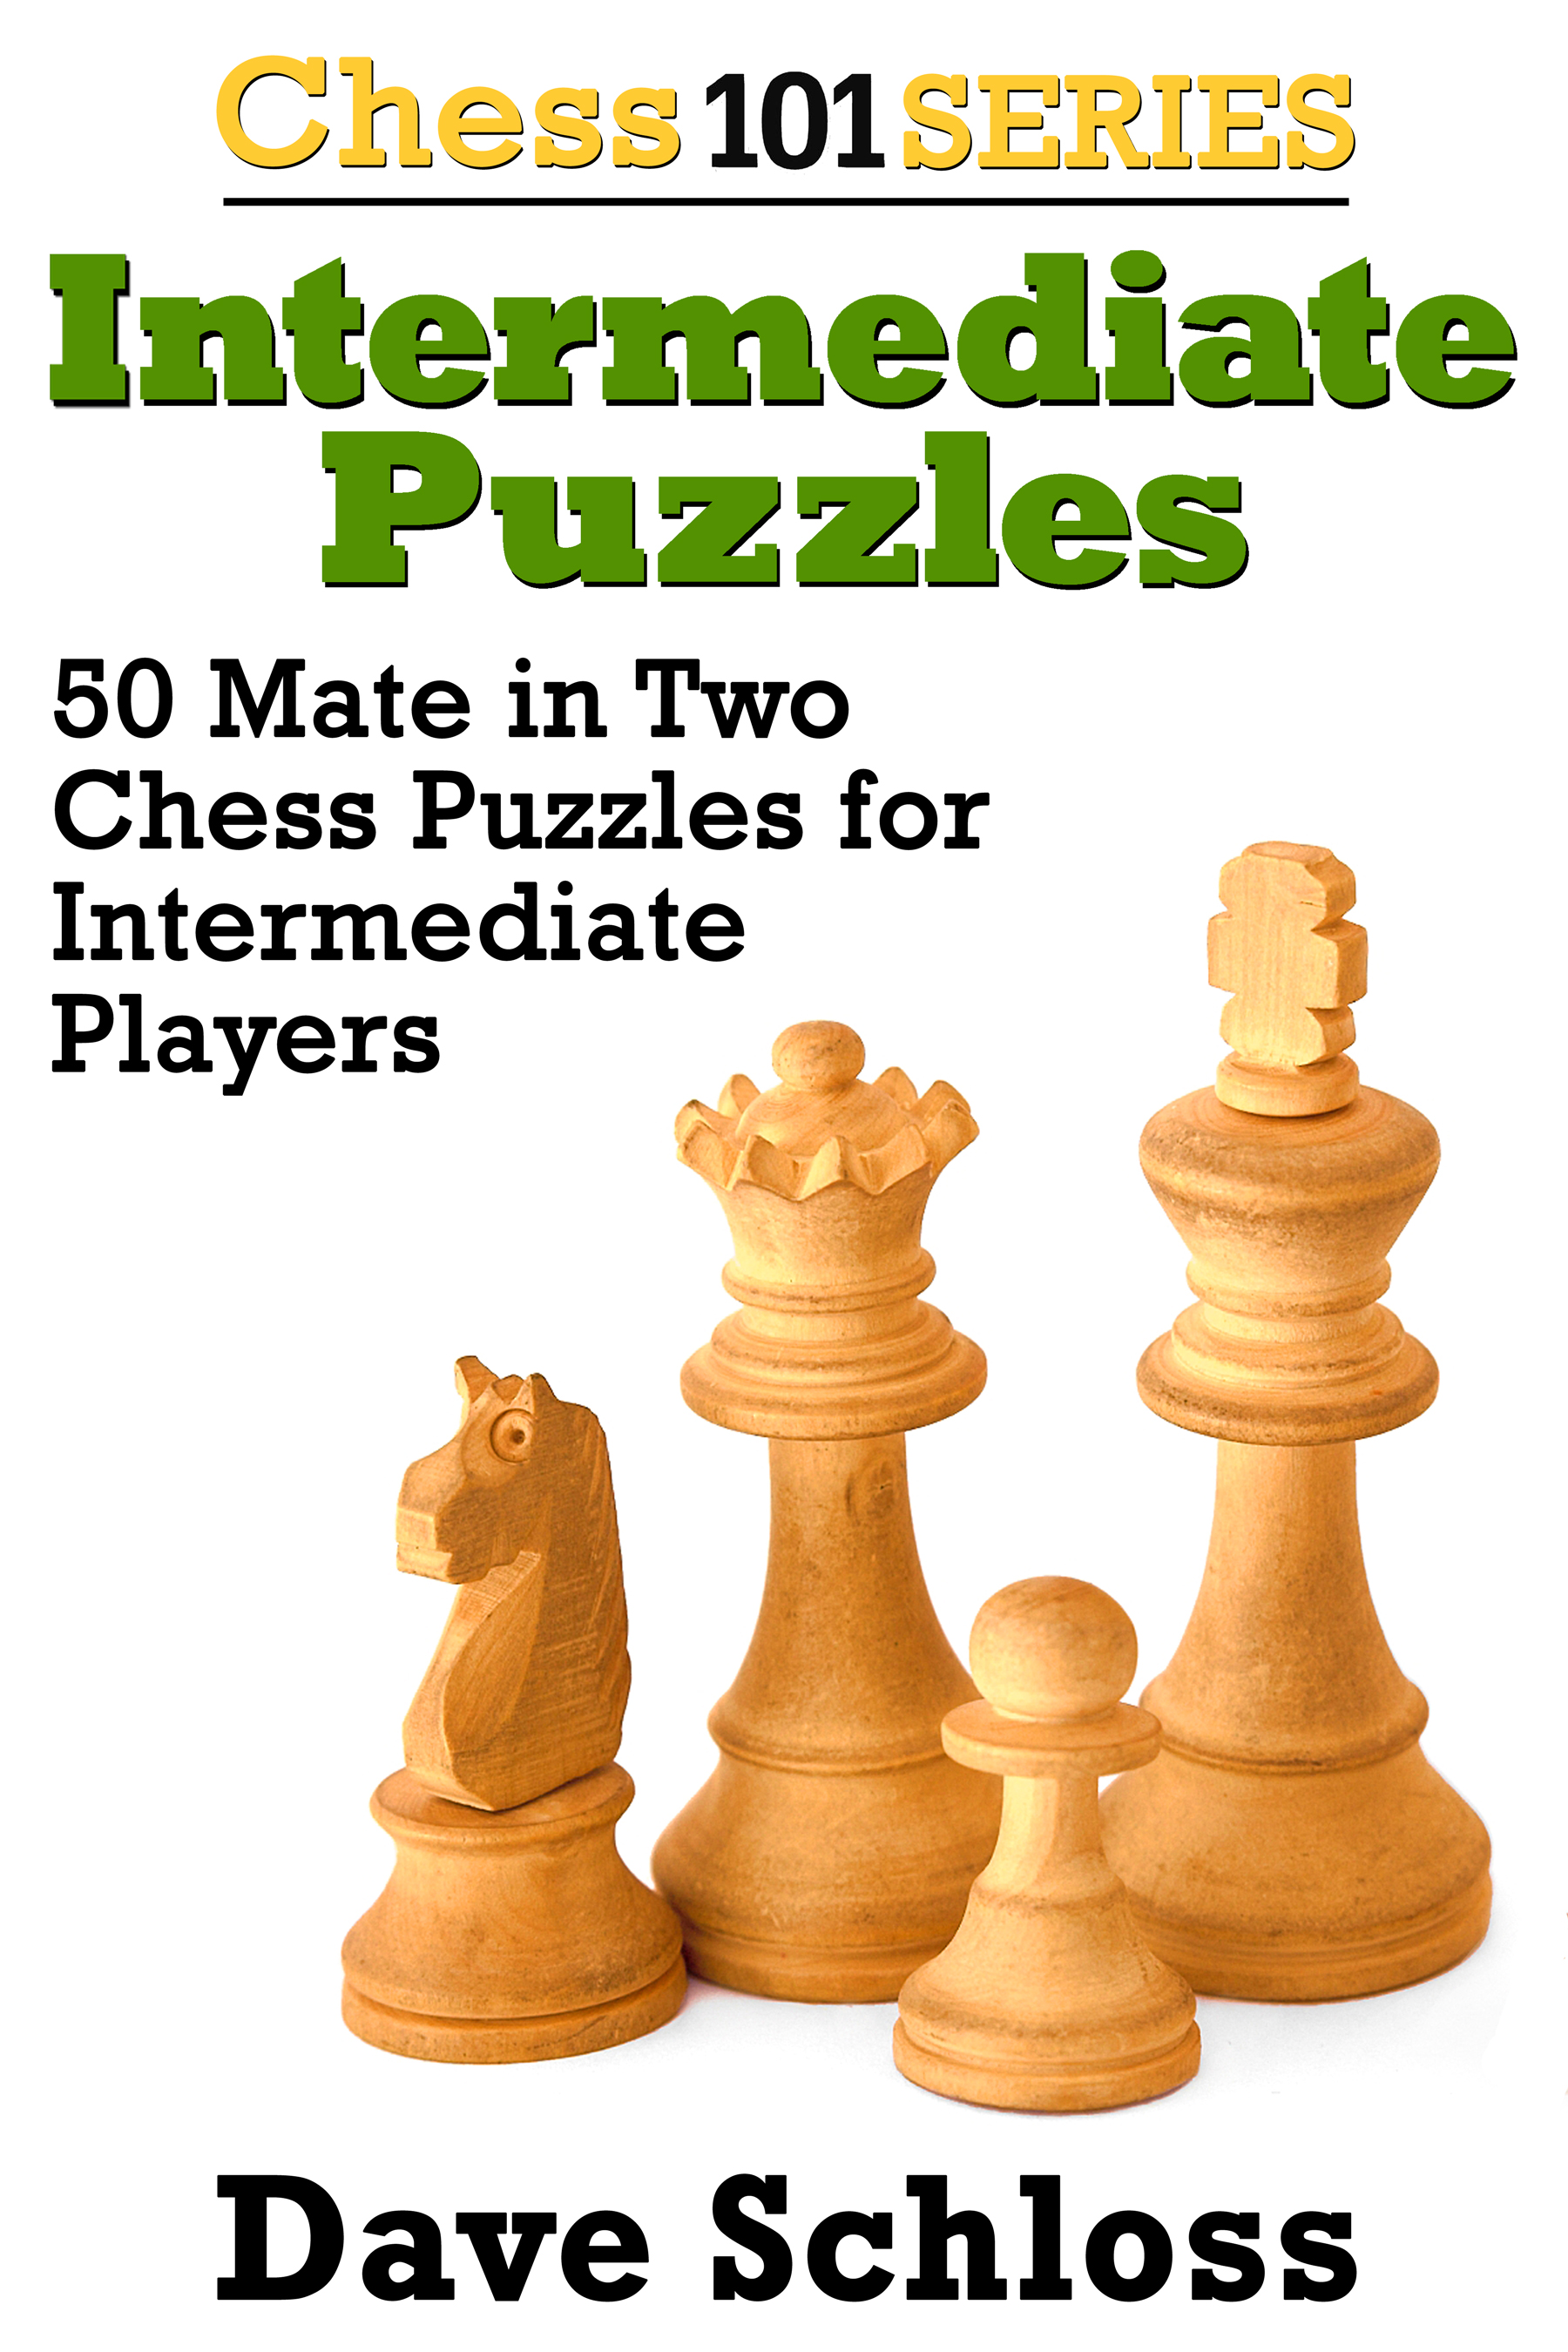 <i>50 mate in 2 chess puzzles for intermediate level players</i>